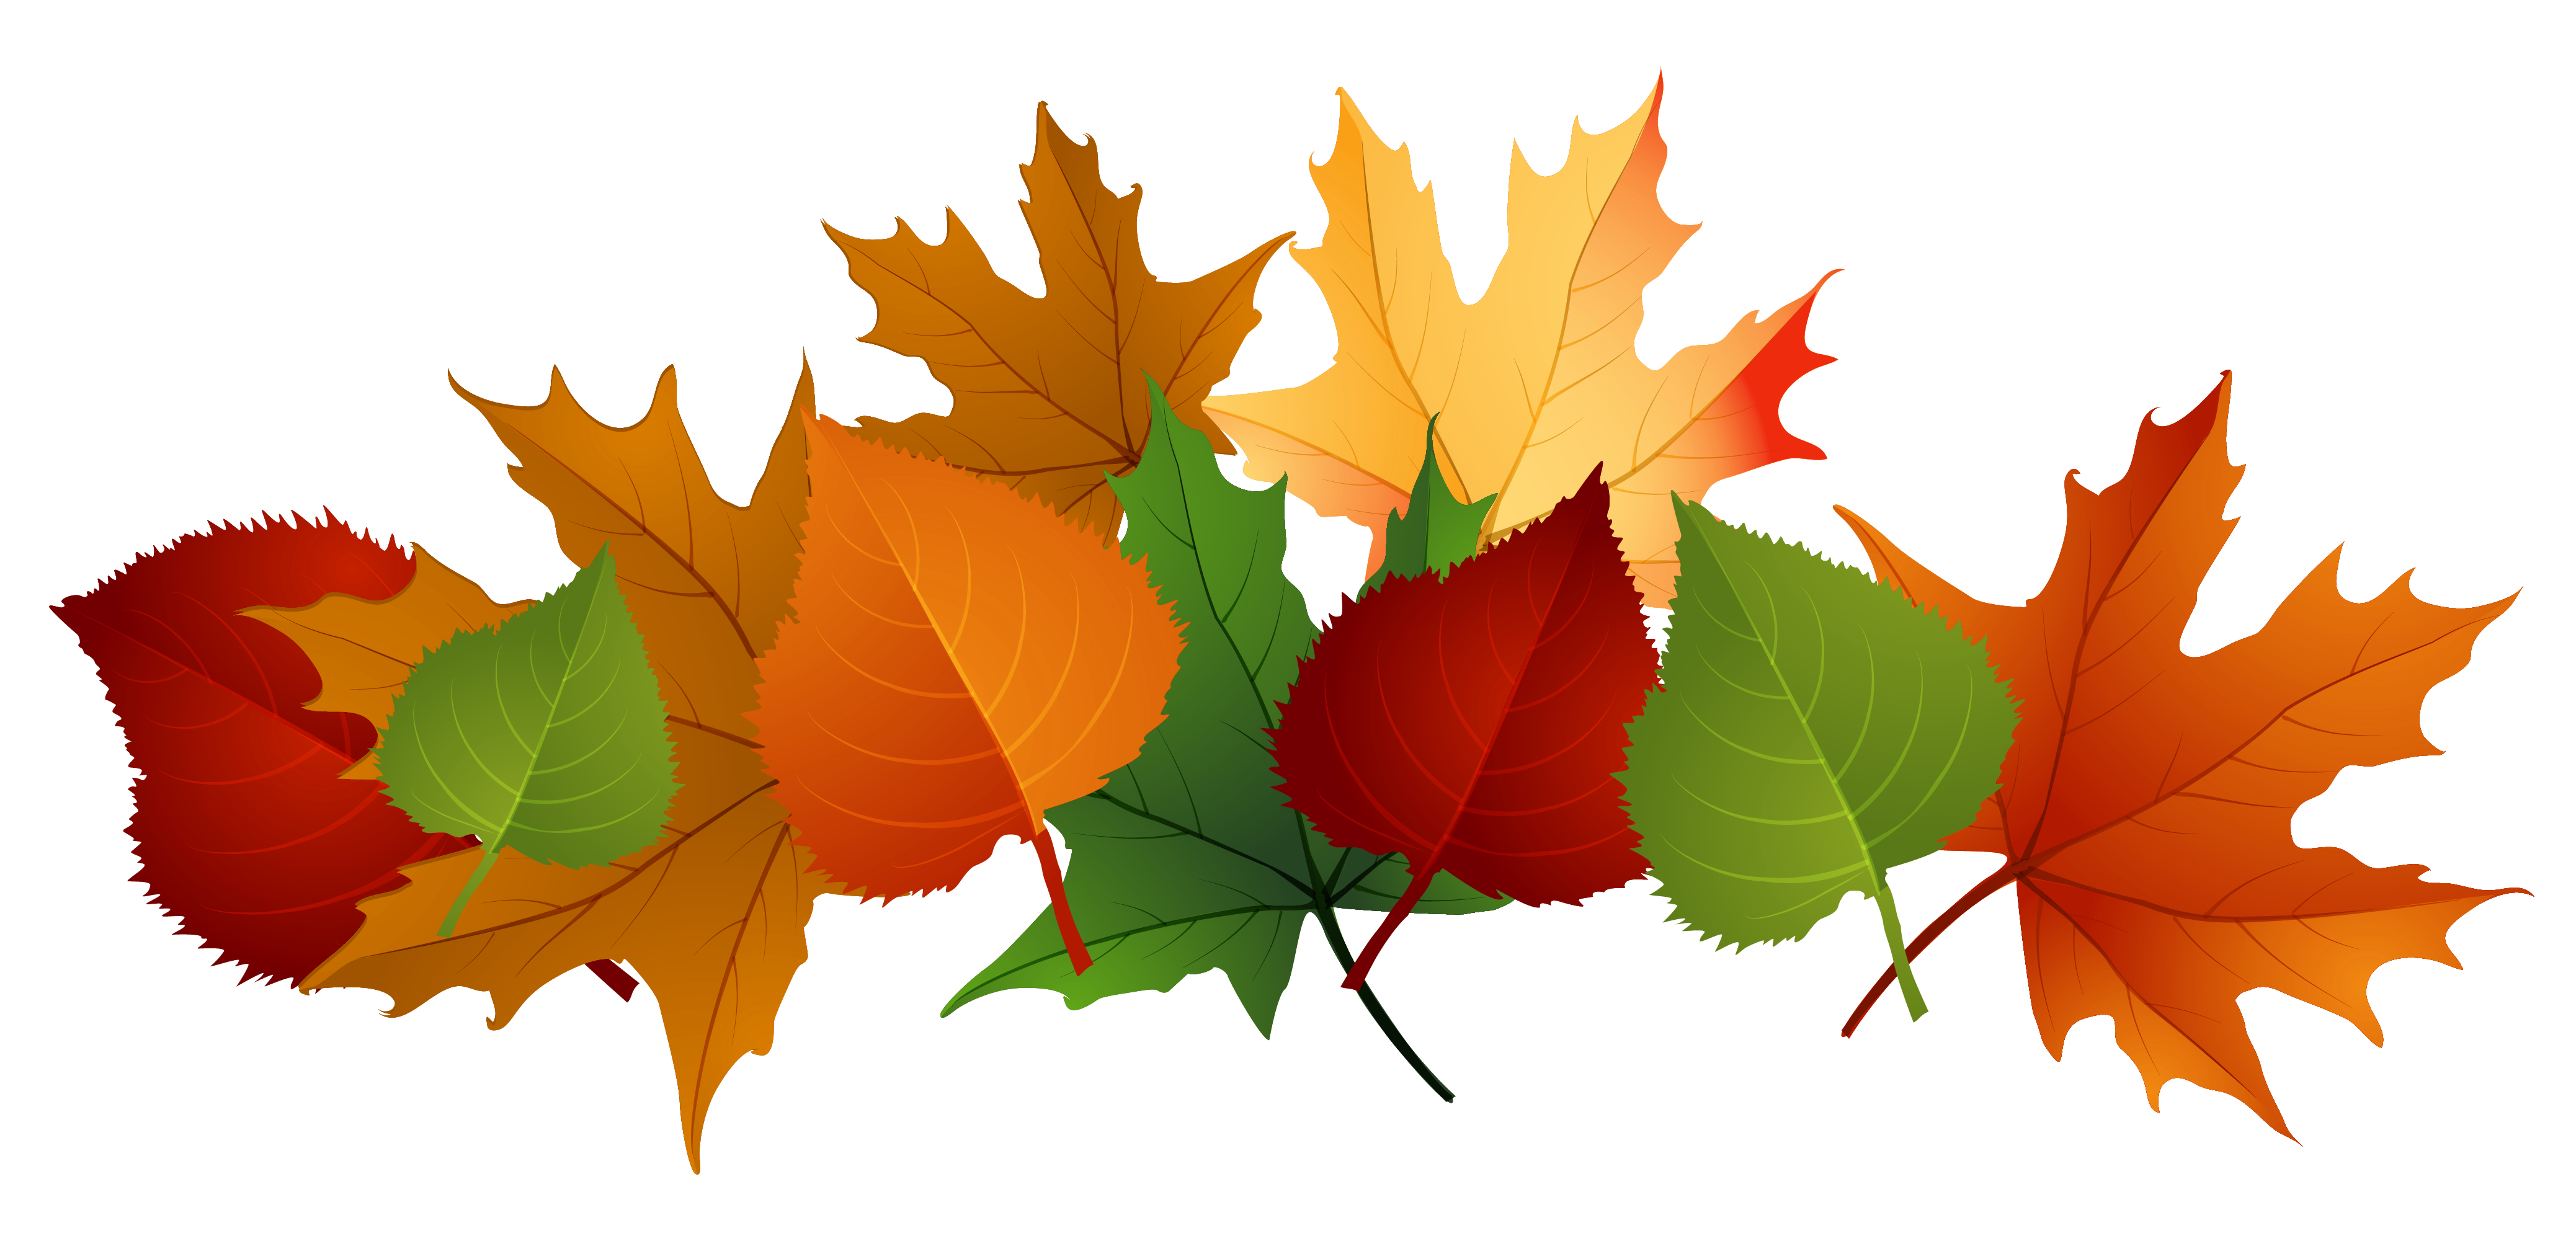 Free clipart autumn leaves with musical notes image free download Leaving the port of Palm Beach and cruising to Freeport, Grand ... image free download